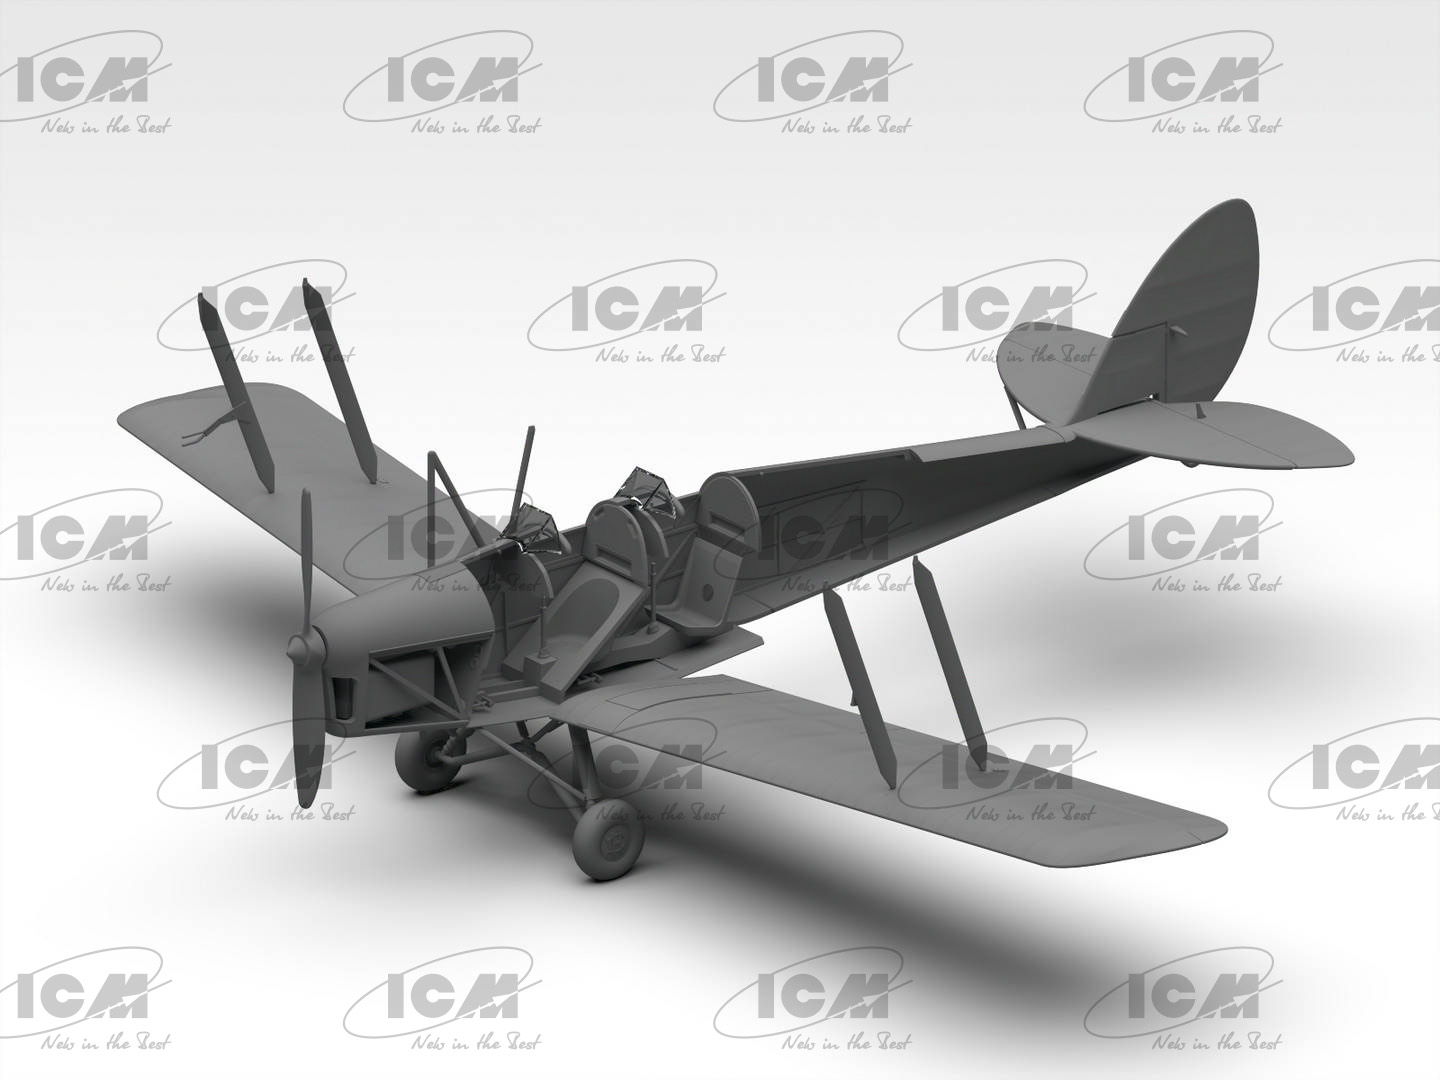 1606202764_de-havilland-dh82a-render-4-ryerryiryos